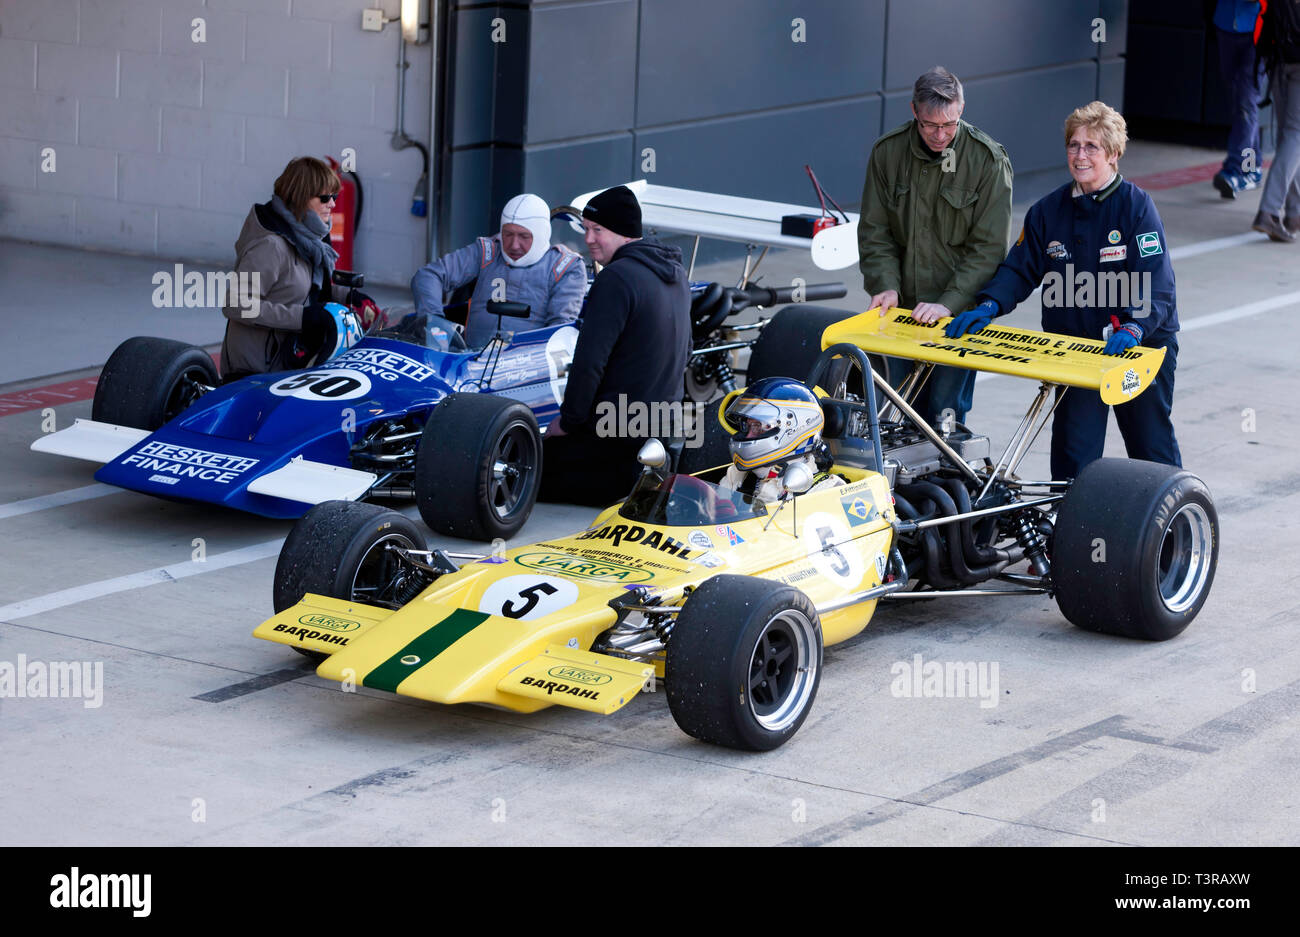 Roger Bevan sitting in his Yellow,1971 Lotus 69, previously driven by Emmerson Fittipaldi, during the 2019 Silverstone Classic Media/Testy Day - Stock Image